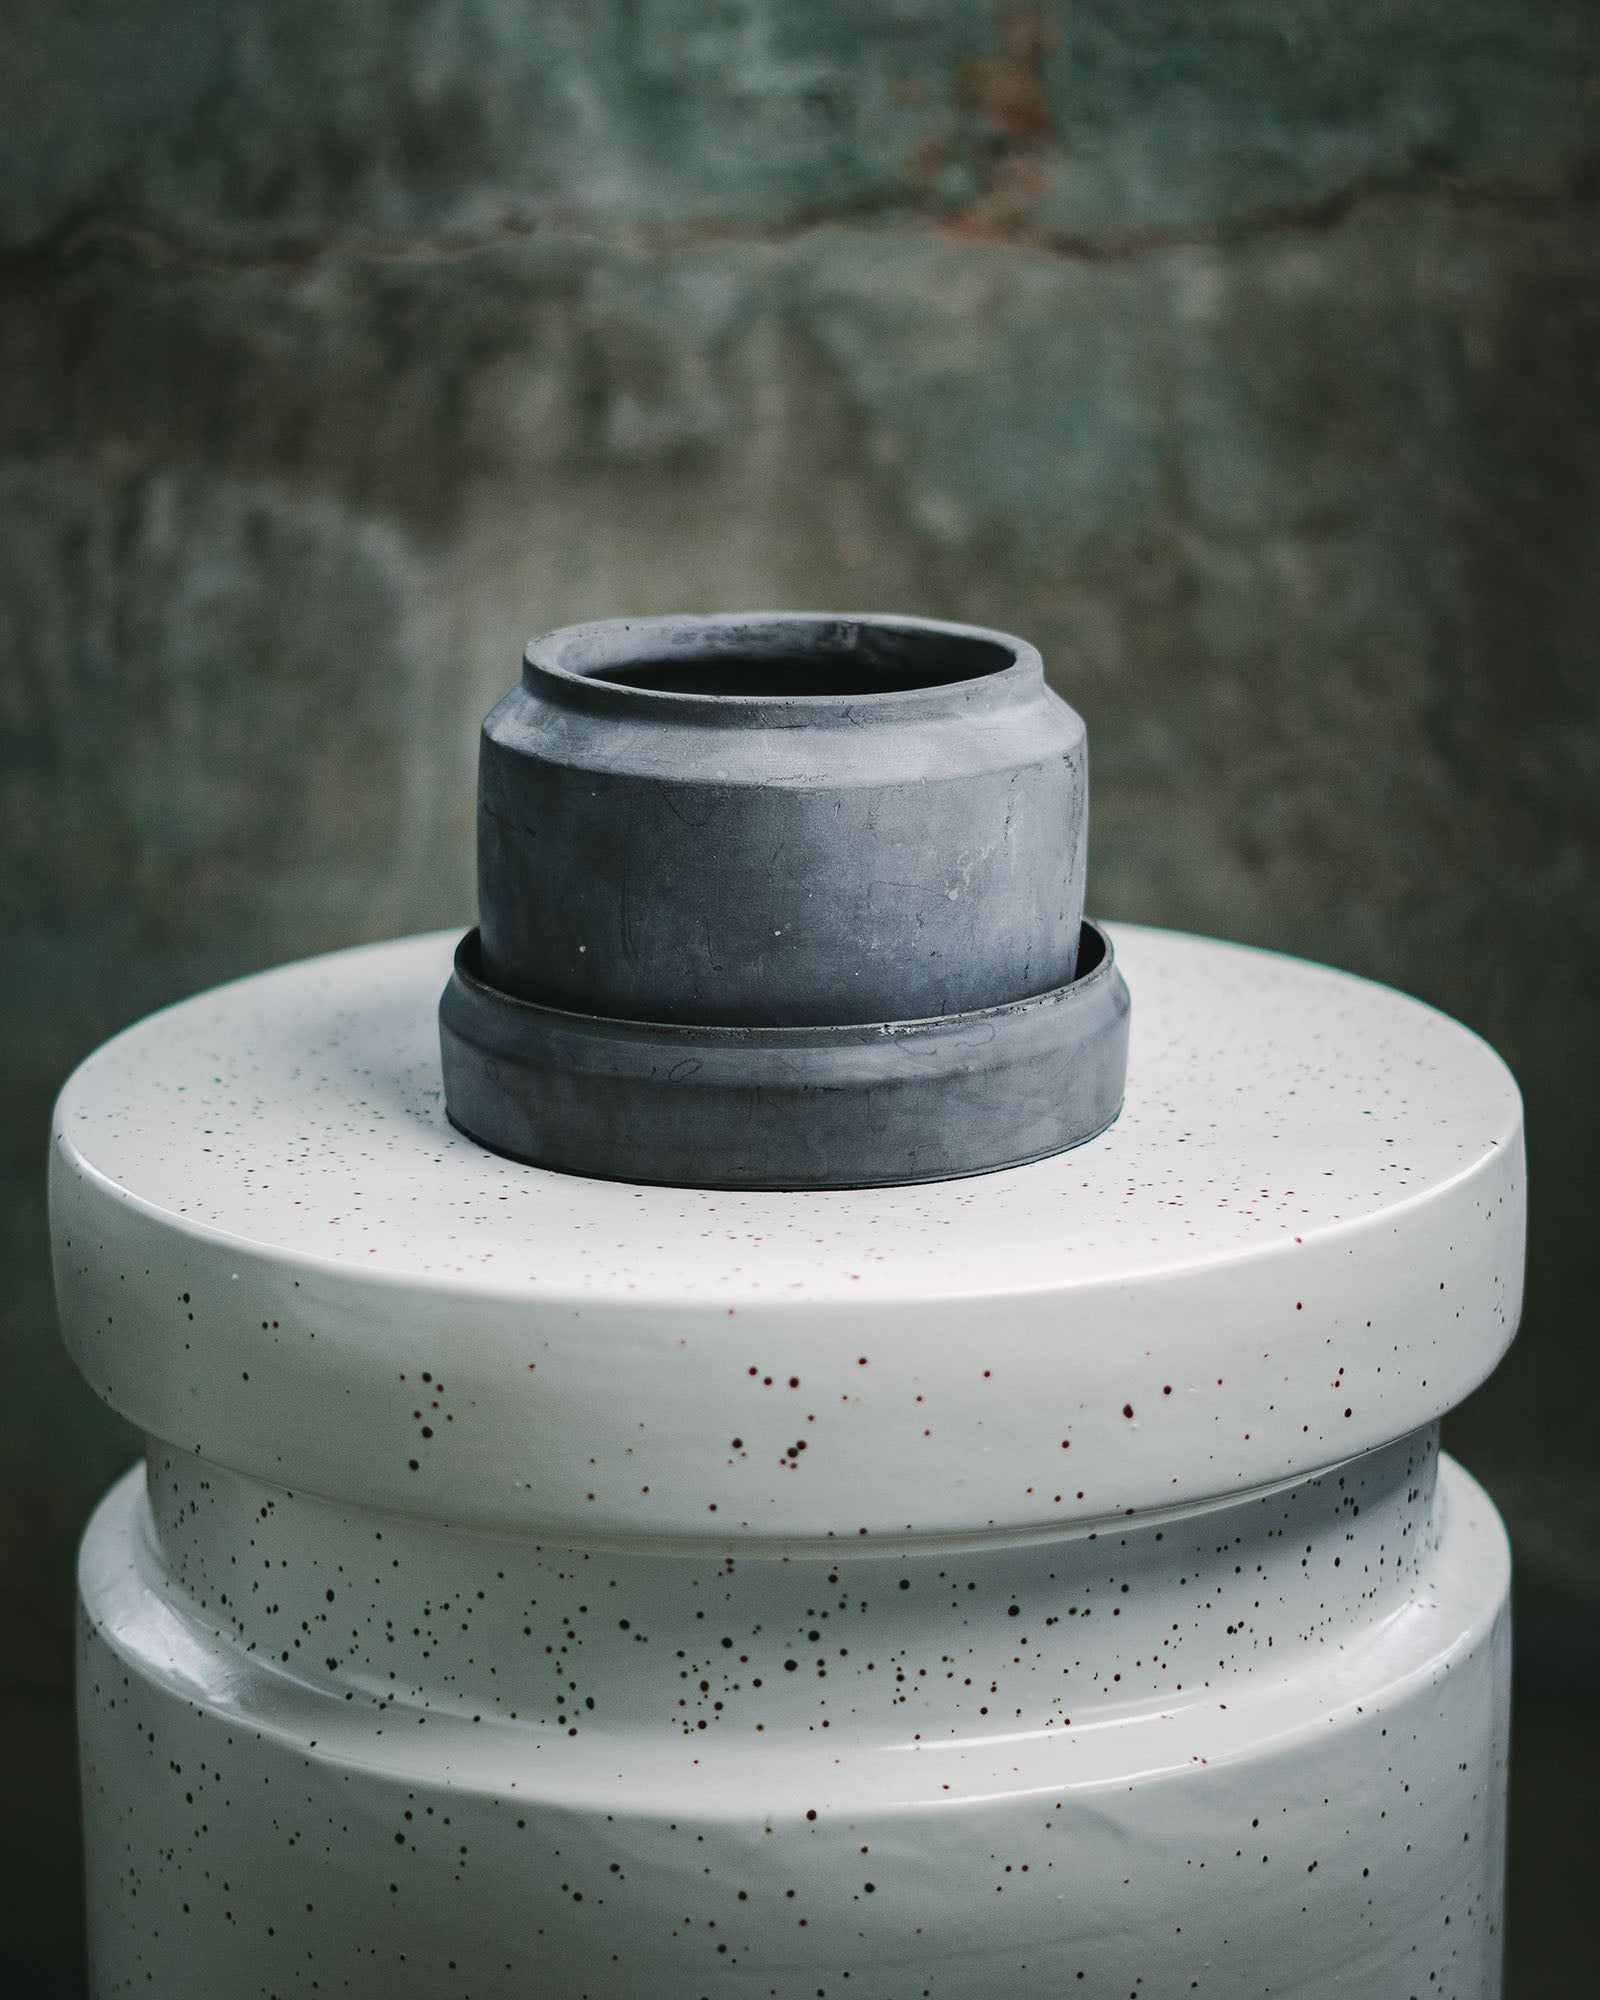 SI'MENTO Vase Grey w/ Drainage Plate